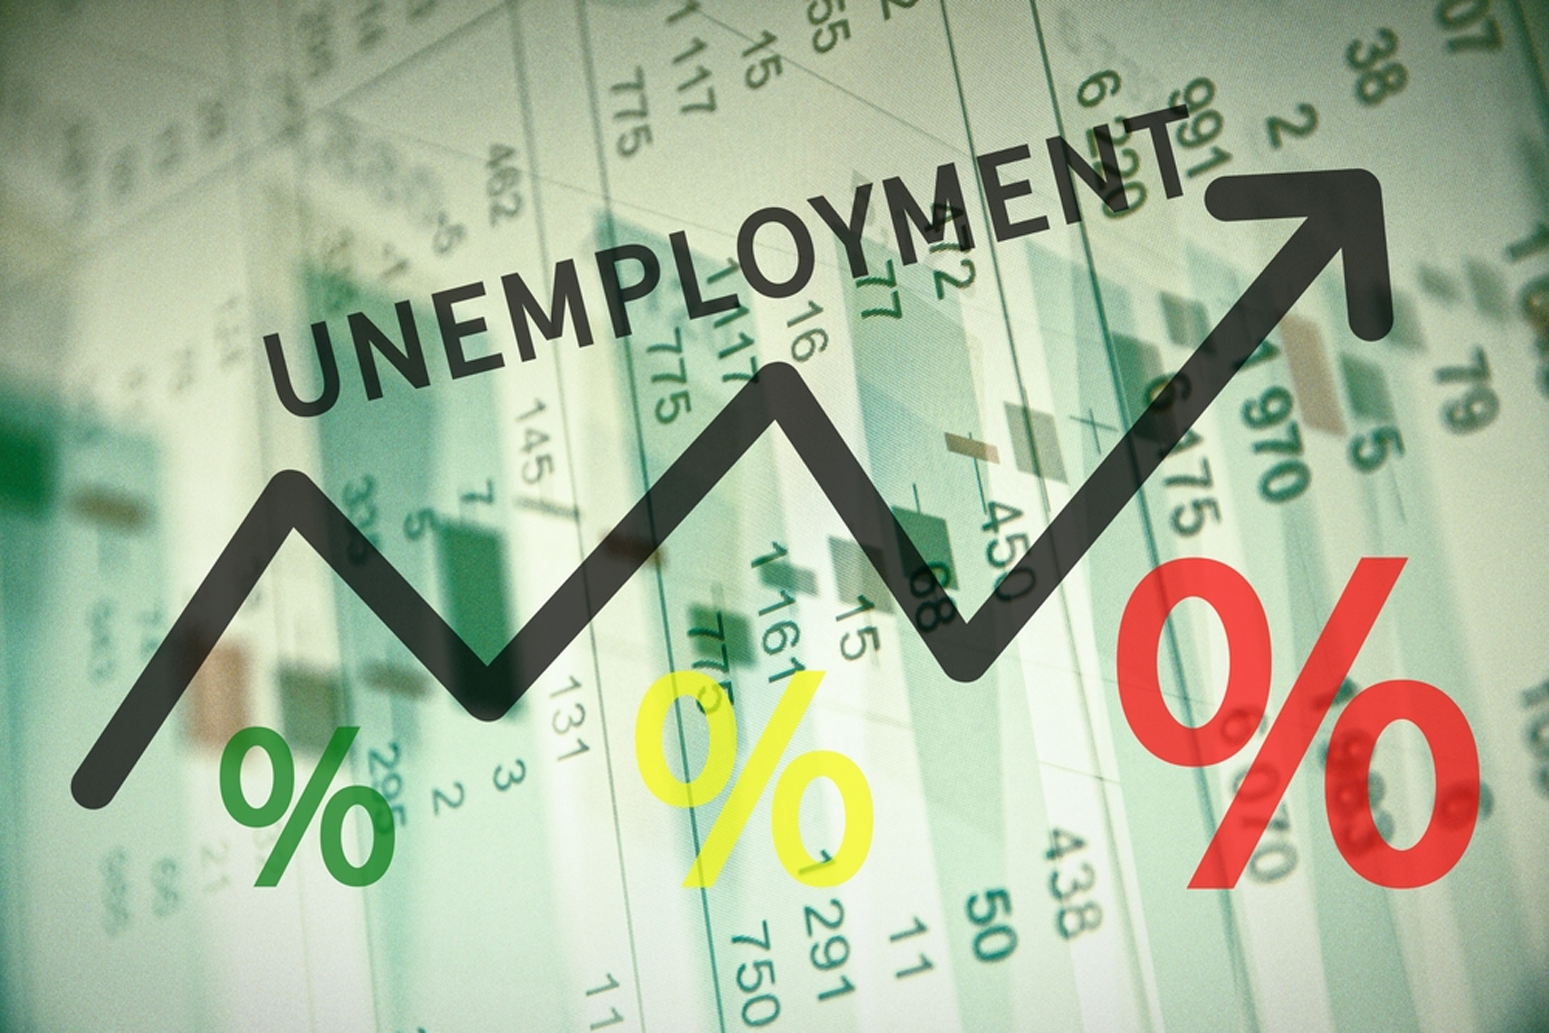 Boost Your Personal Growth When Unemployed